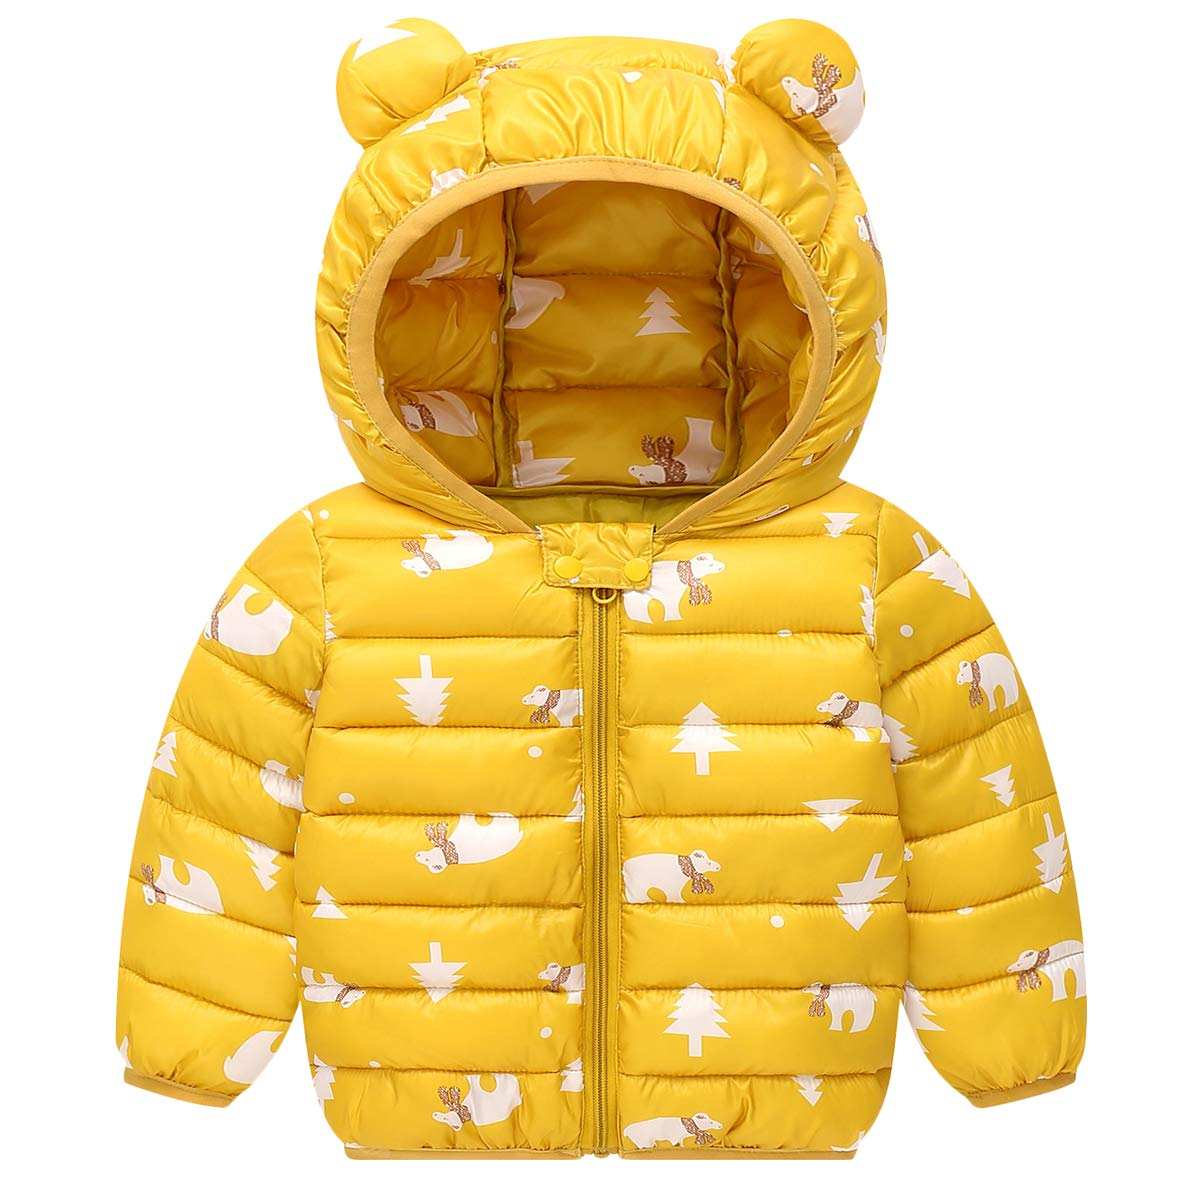 Lemohome Baby Boys Girls Winter Coats Hoods Light Puffer Down Jacket Outwear